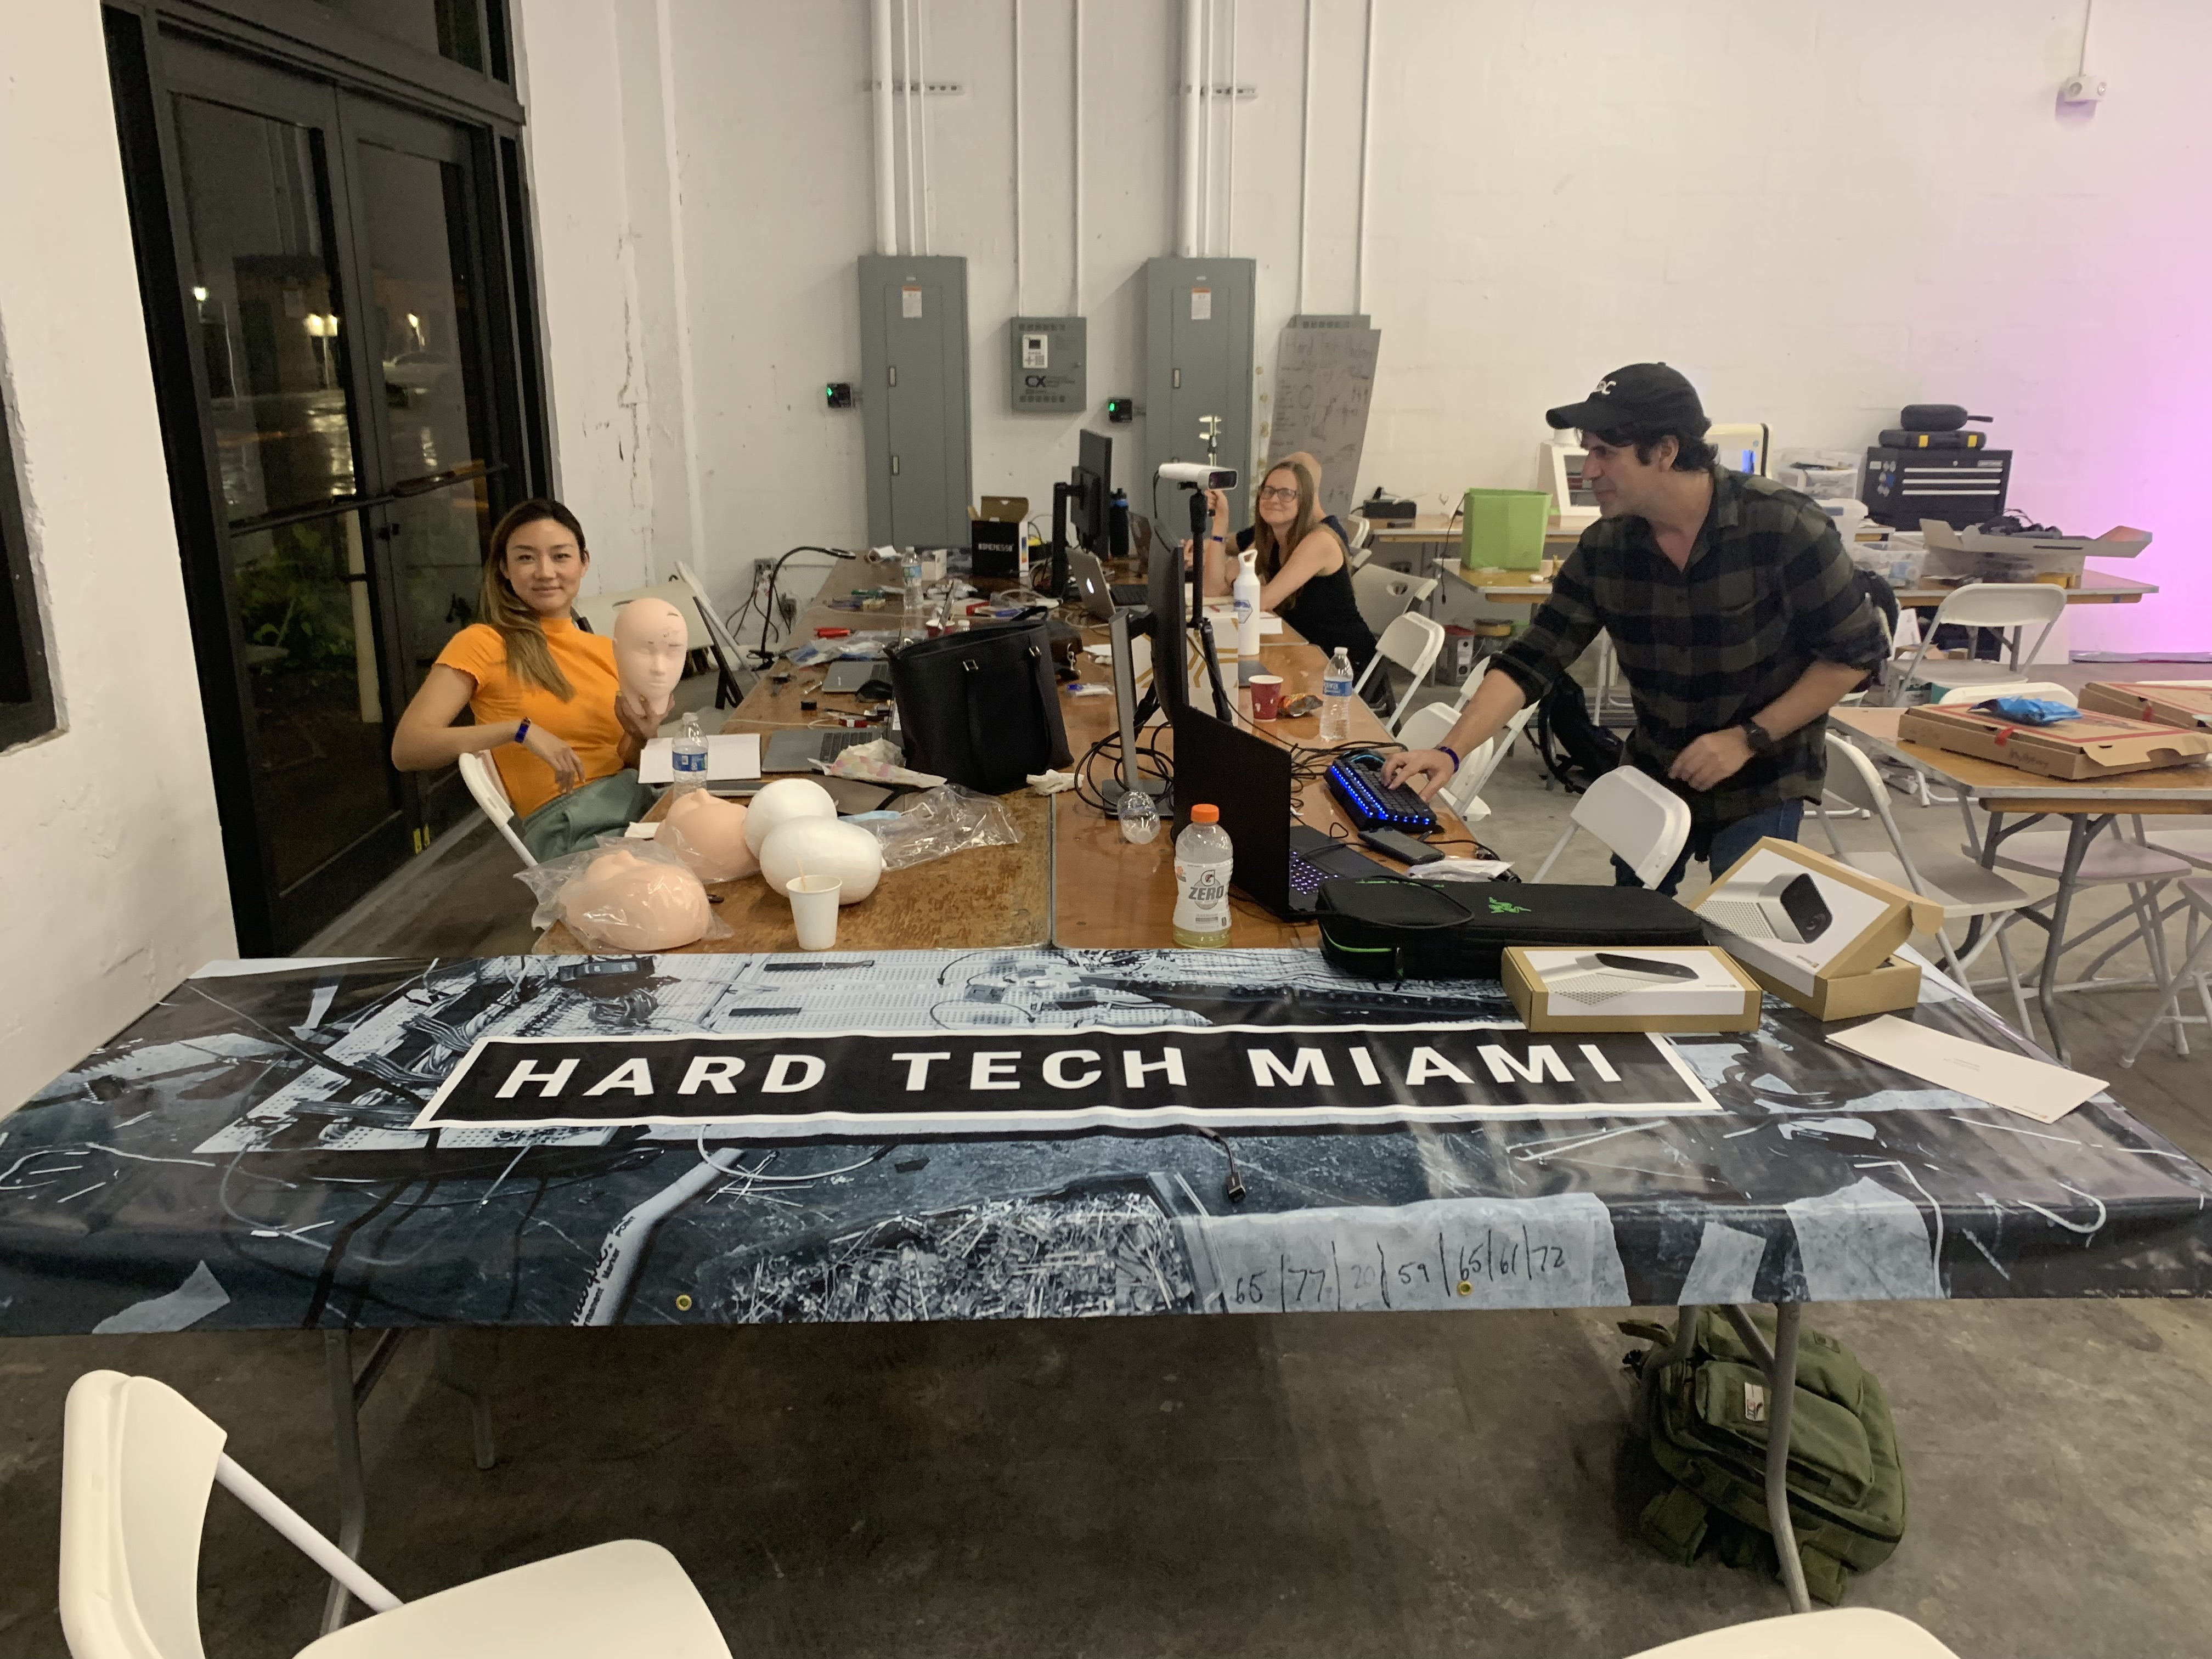 Hard Tech Miami hackers working late into the night for Miami Hack Week